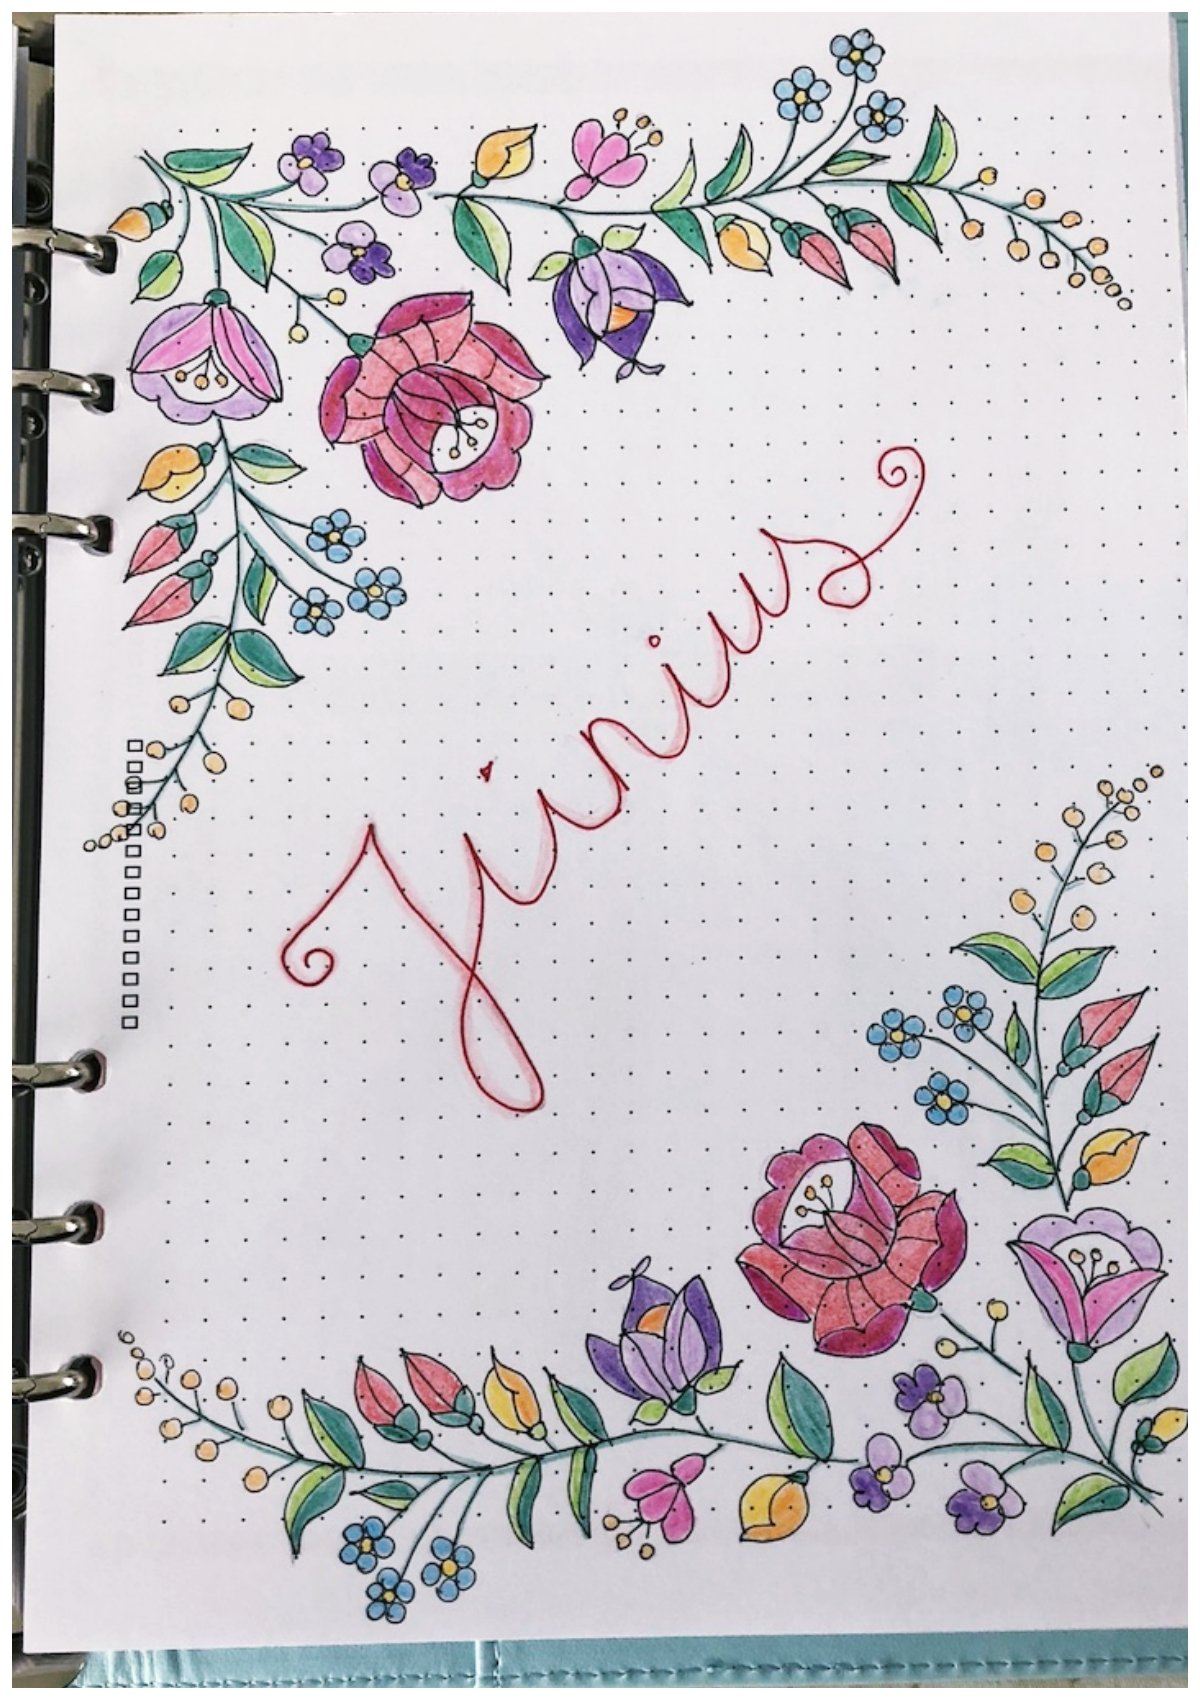 Bullet journal monthly cover June - itstartswithacoffee.com #bulletjournal #bulletjournaling #monthlyplanner #monthlycover #coverpages #June #bujo